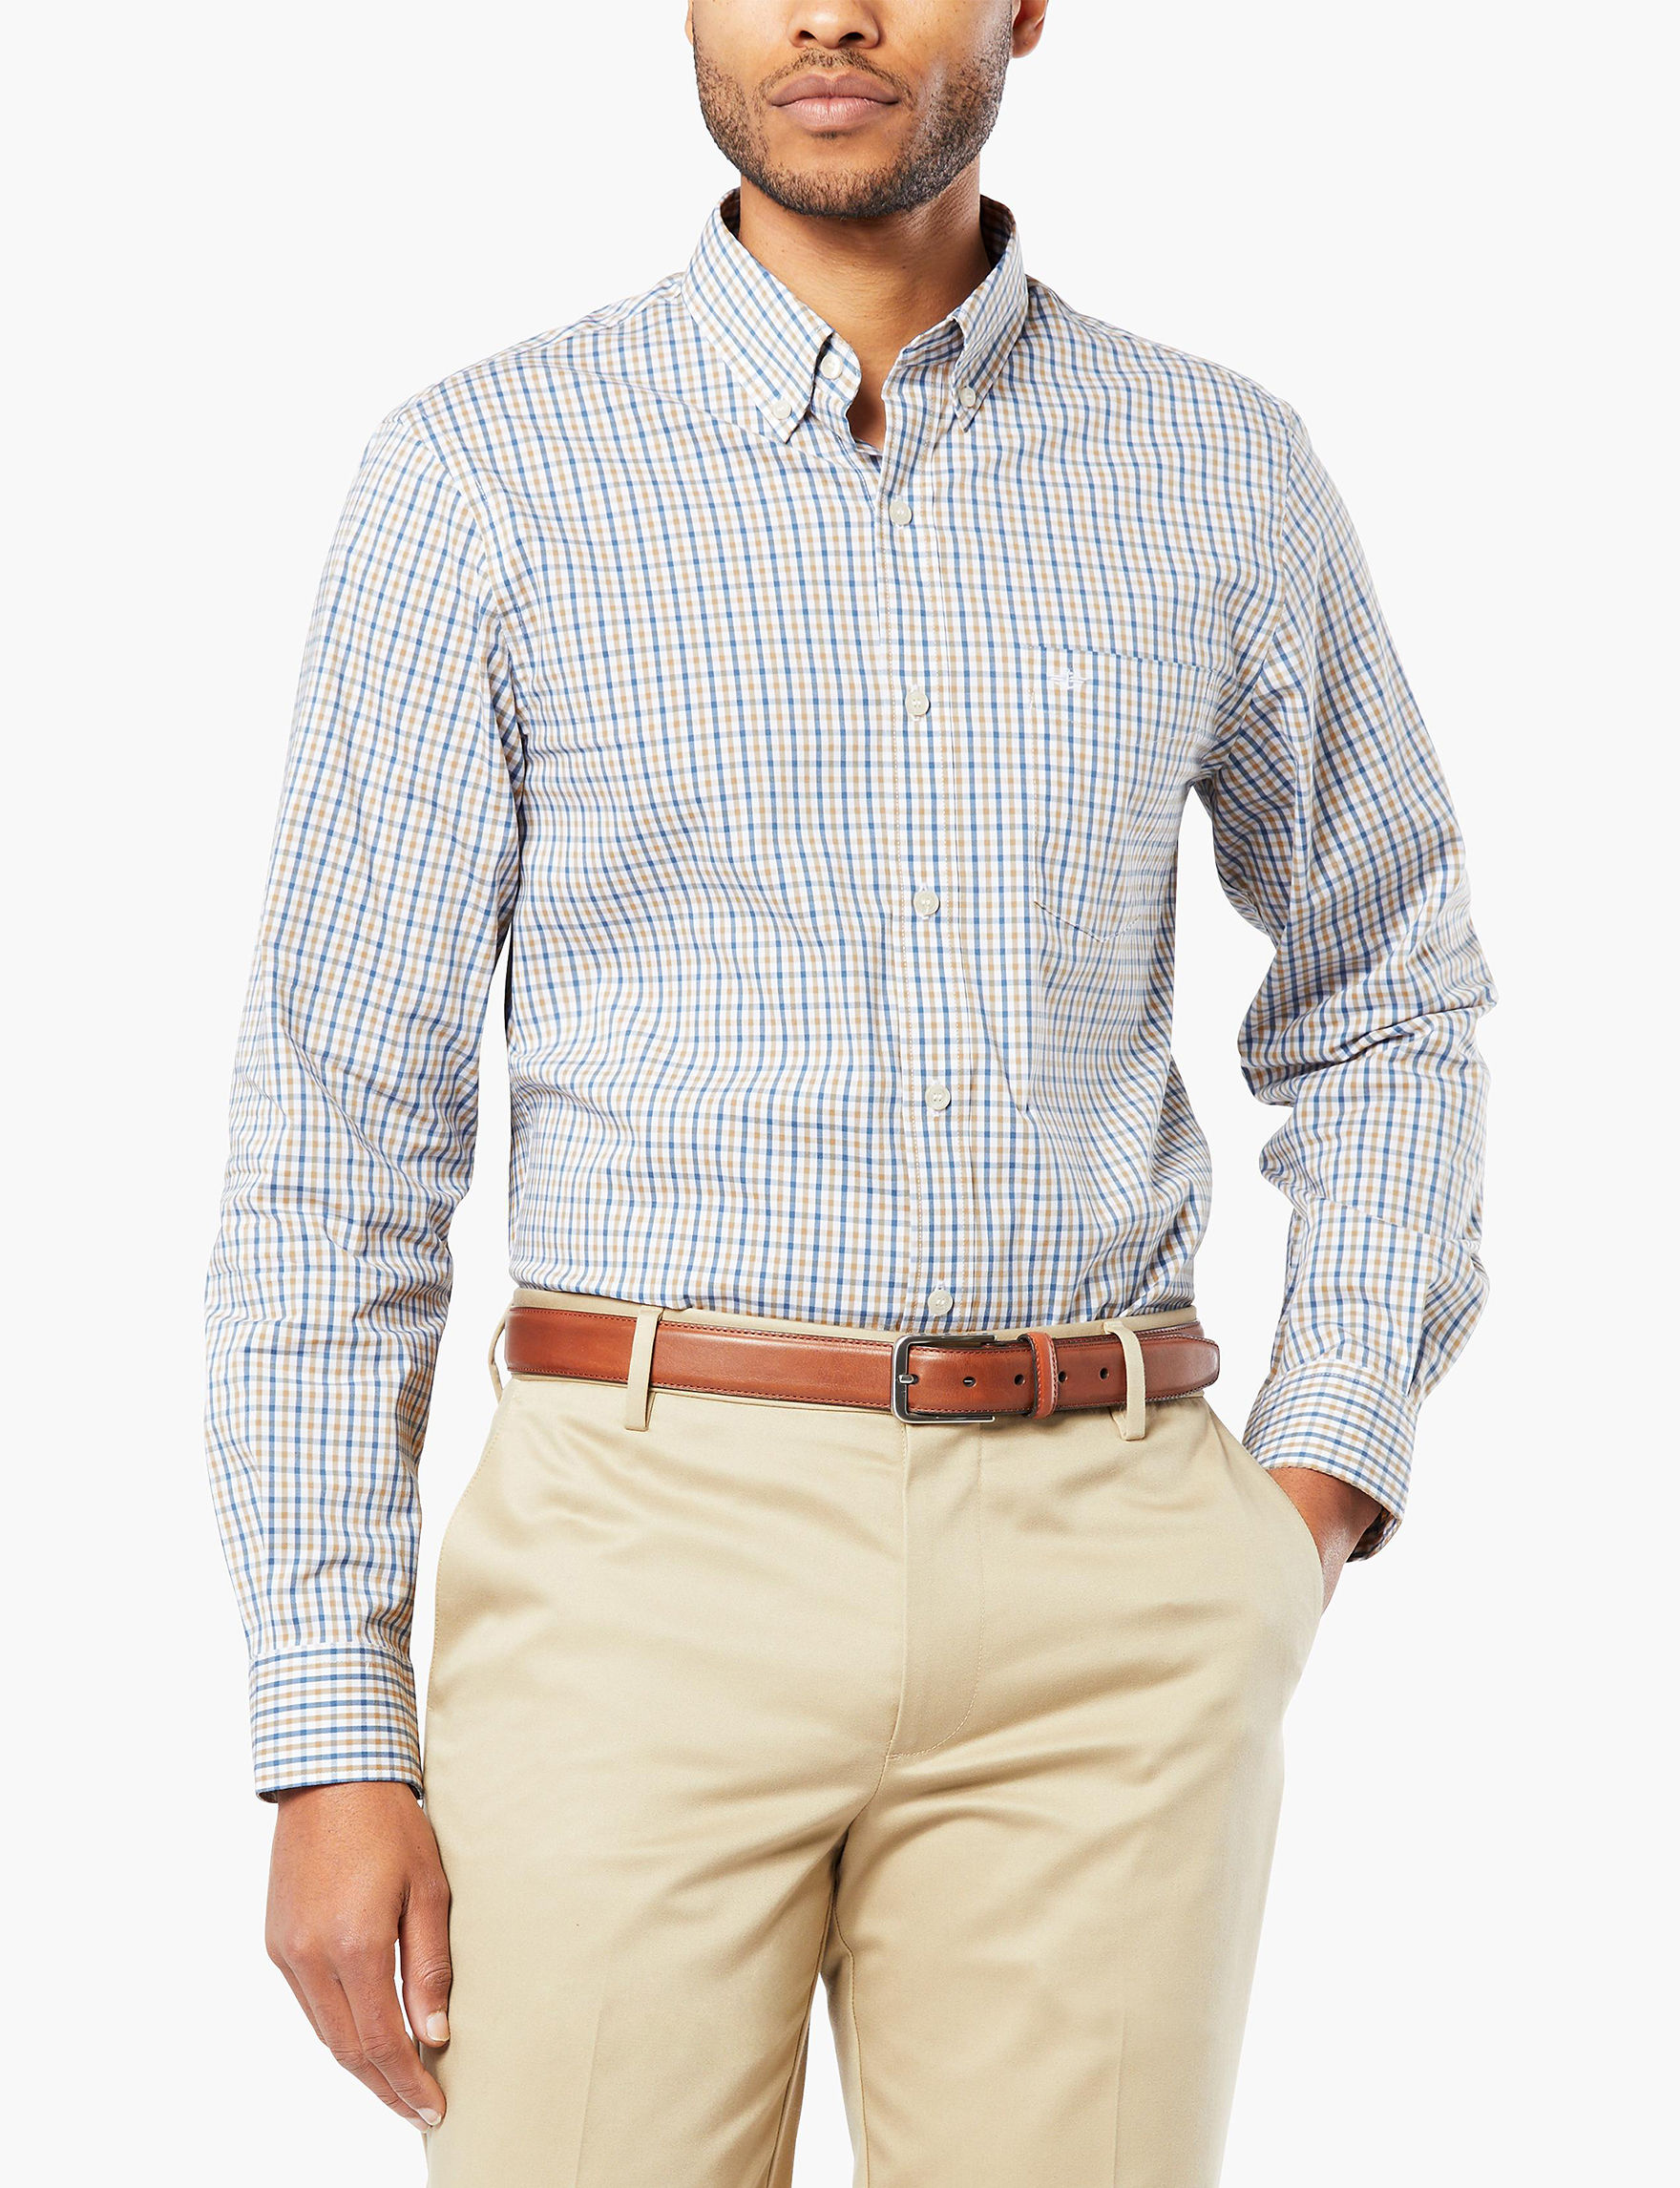 Dockers White Casual Button Down Shirts